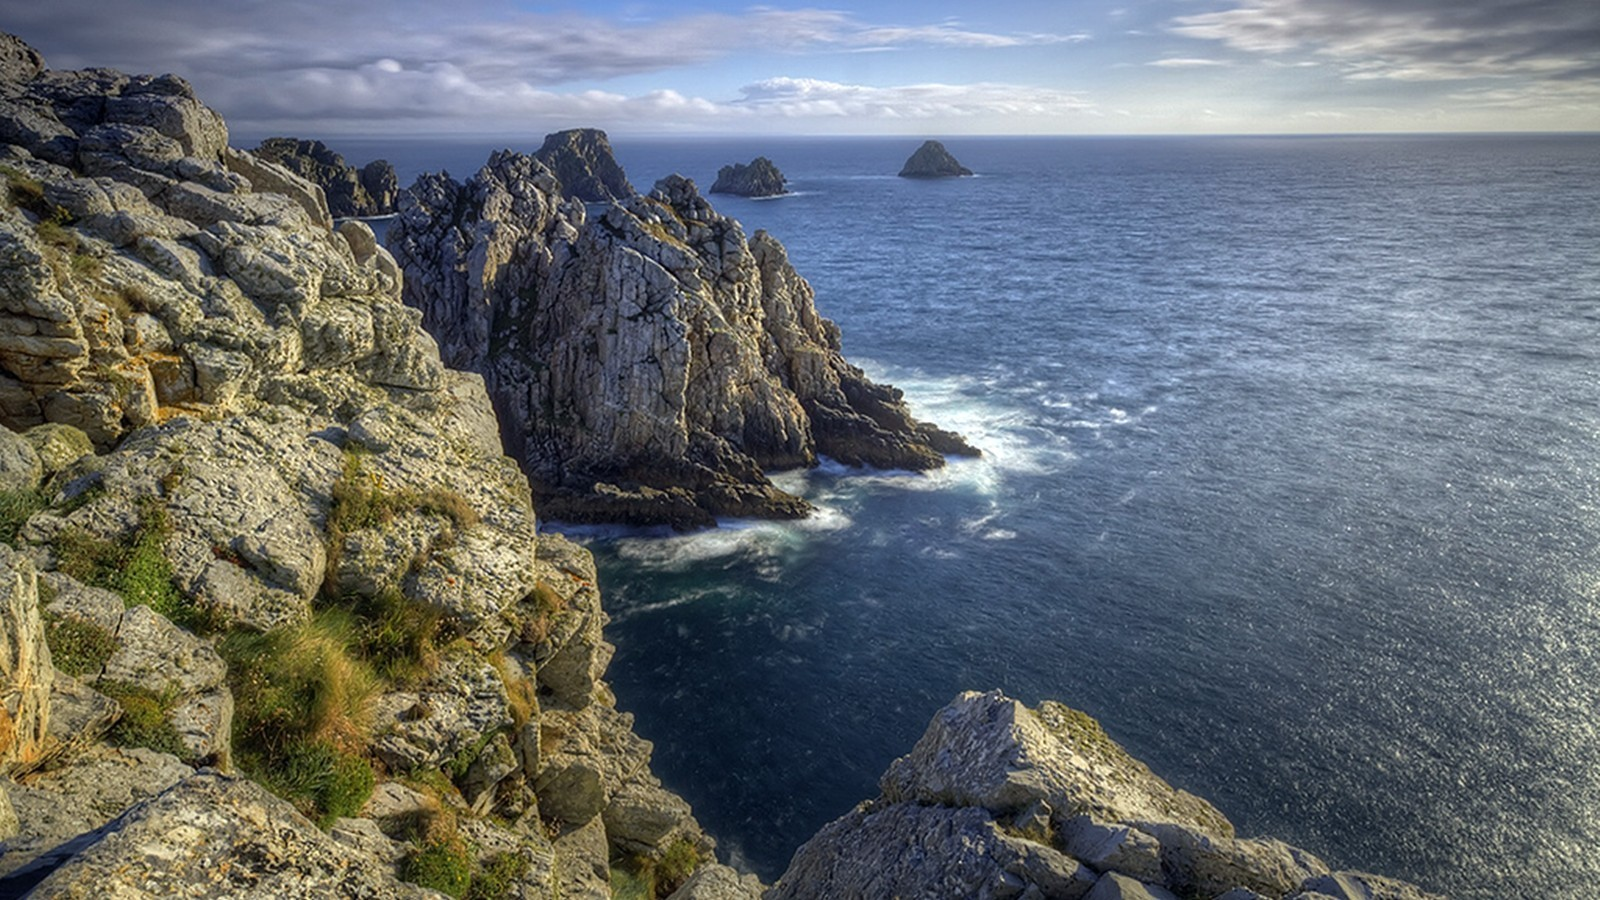 Best Iphone 5 Home Screen Wallpapers Bretagne France Cliffs Clouds Landscapes Wallpaper